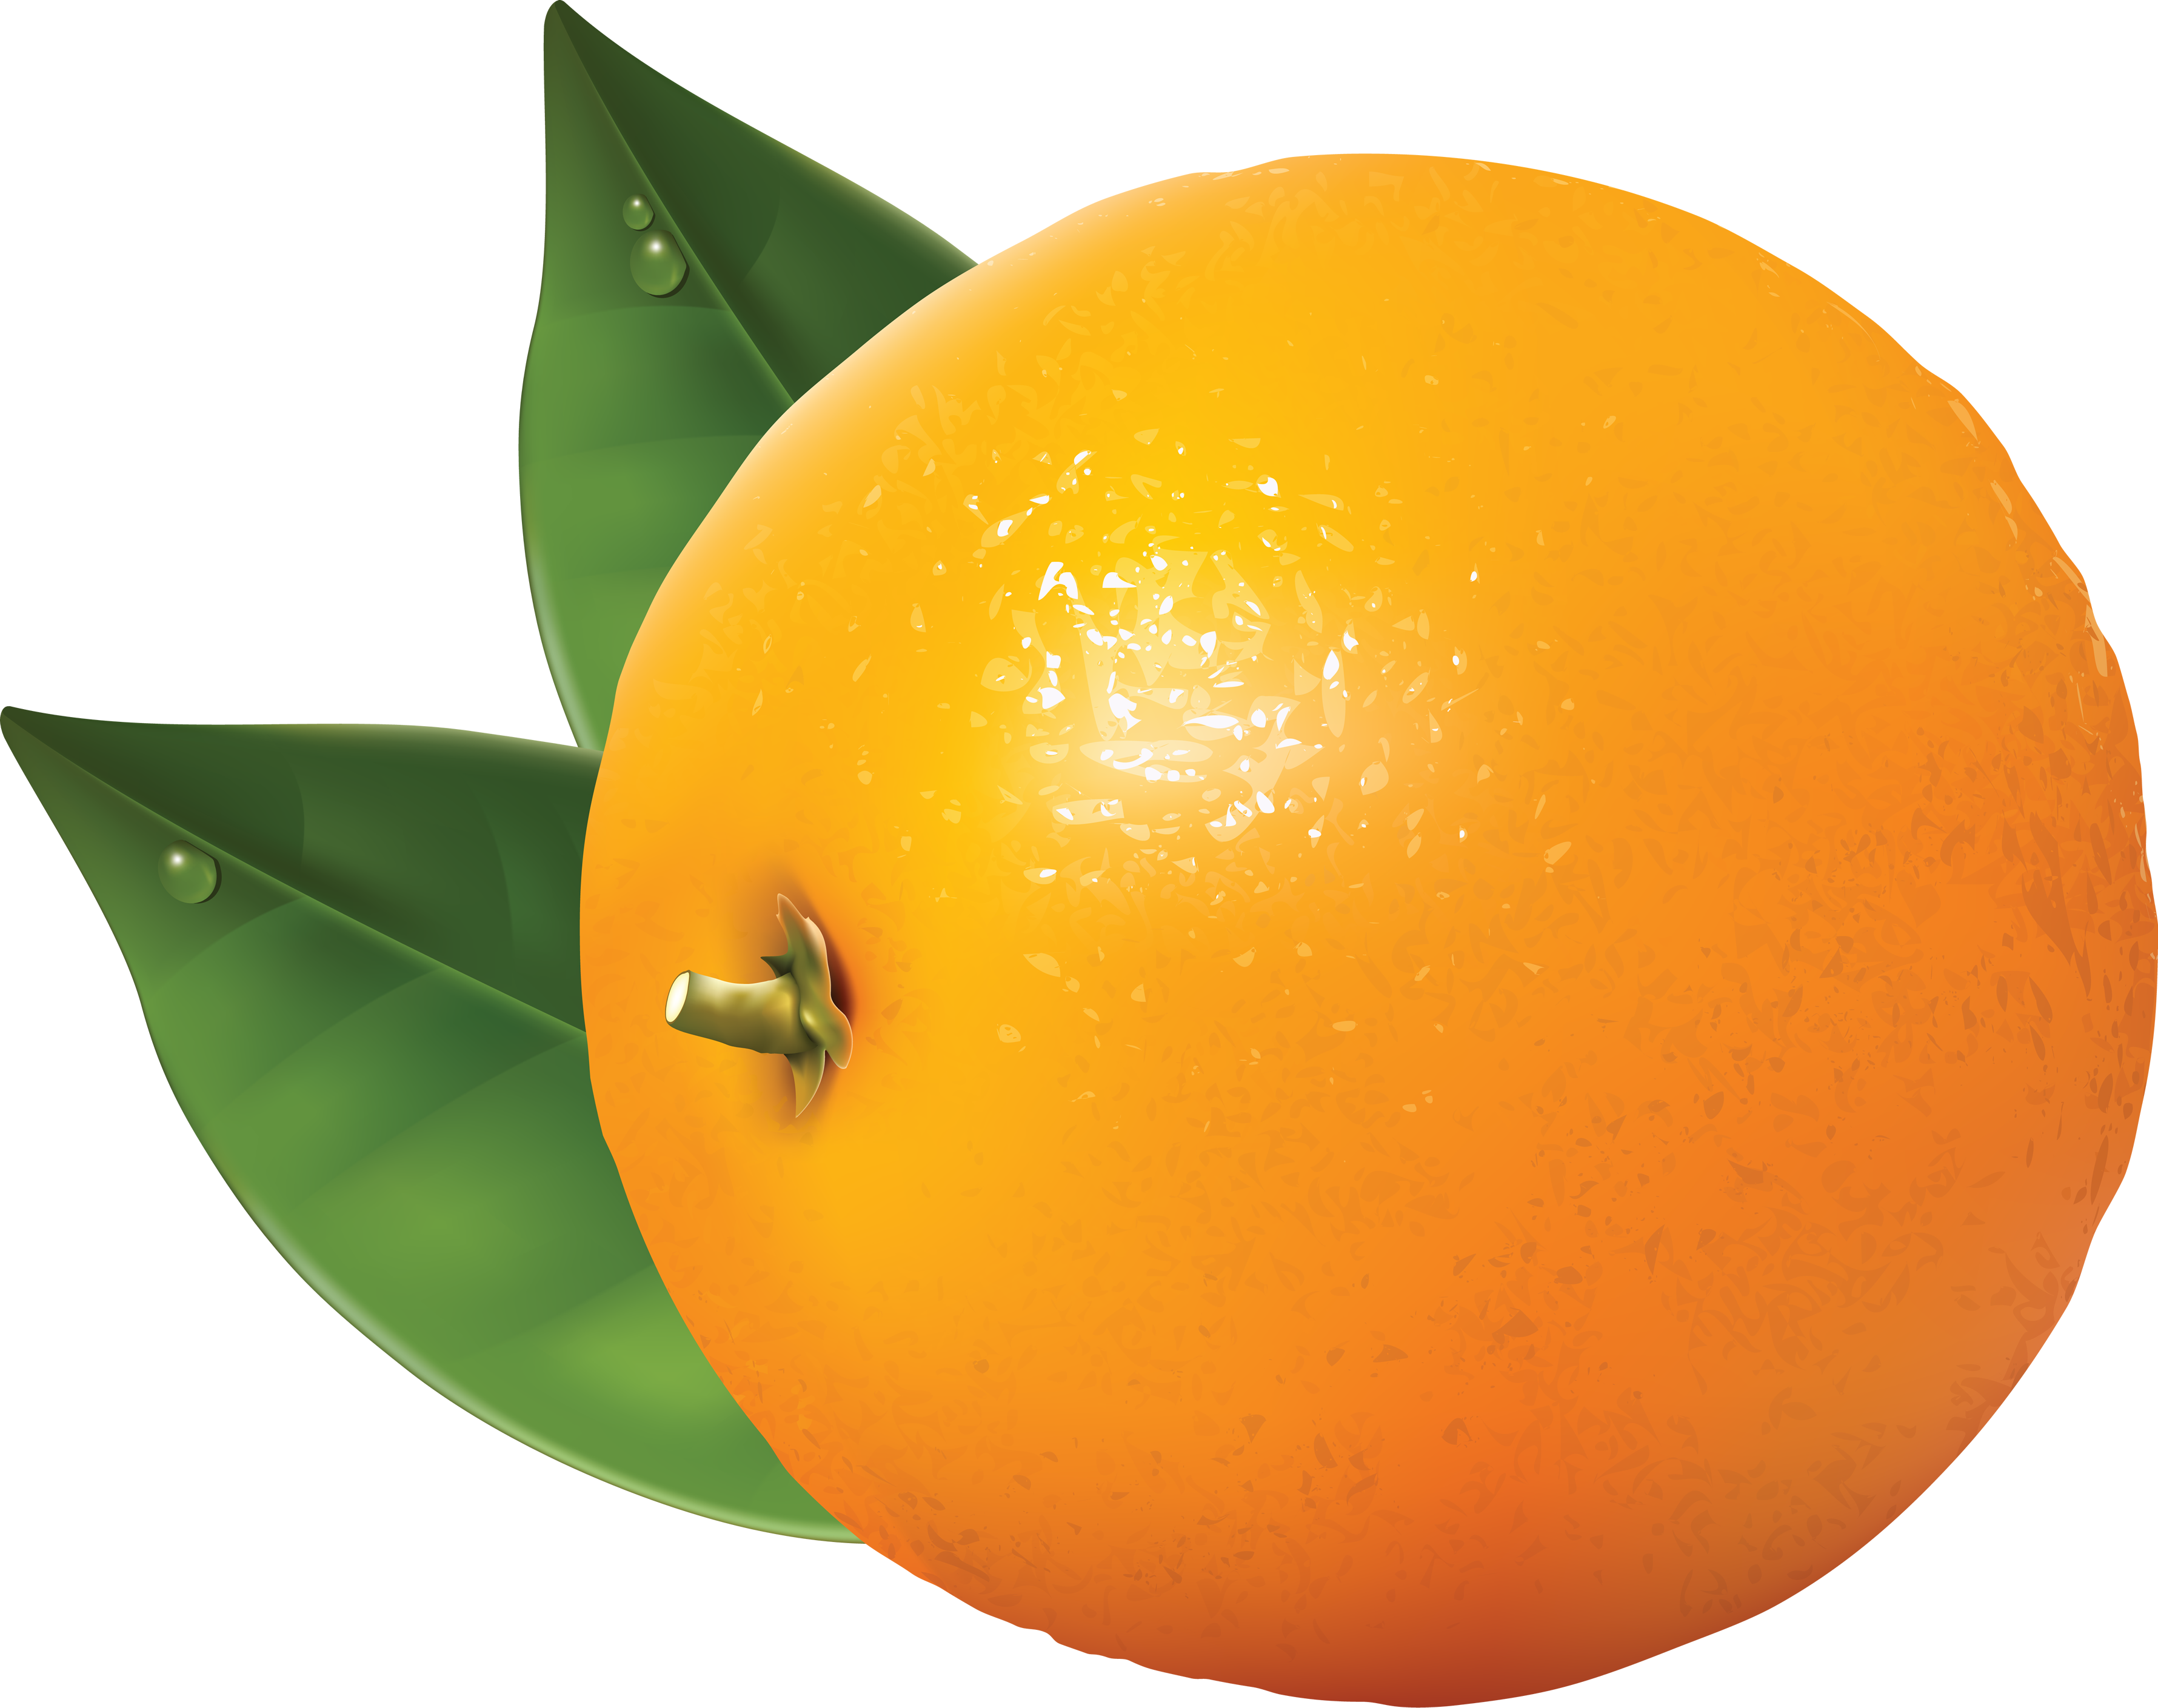 Orange Tangerine Clip art.